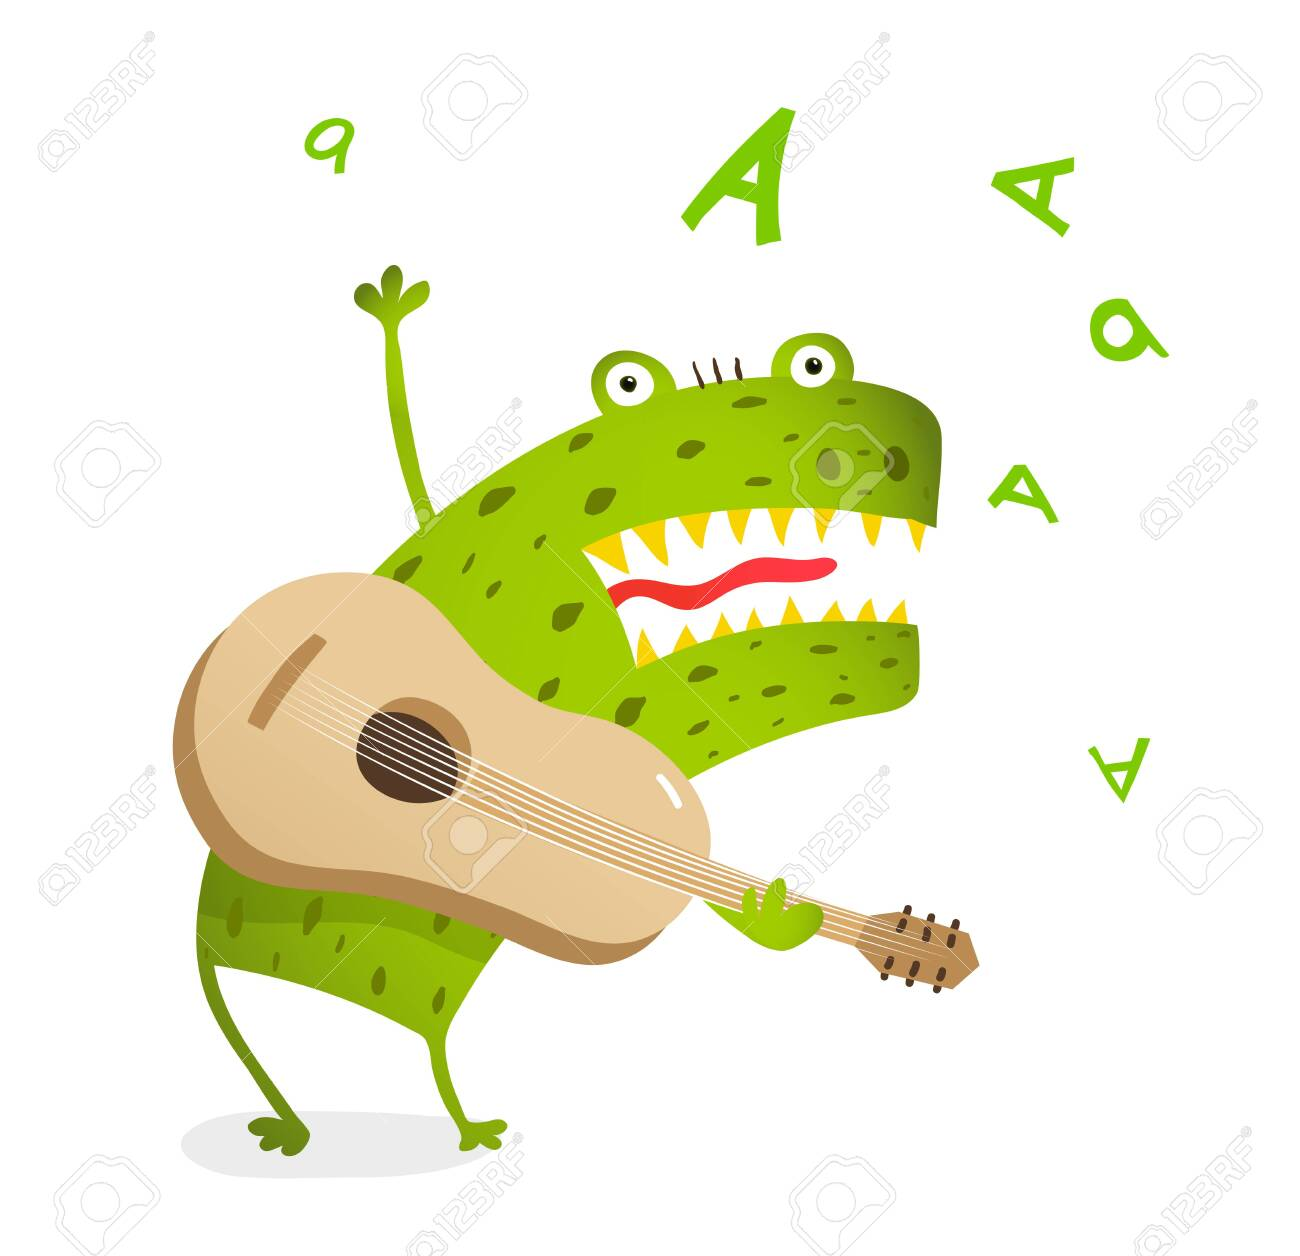 Funny monster playing guitar and singing  Cute music cartoon